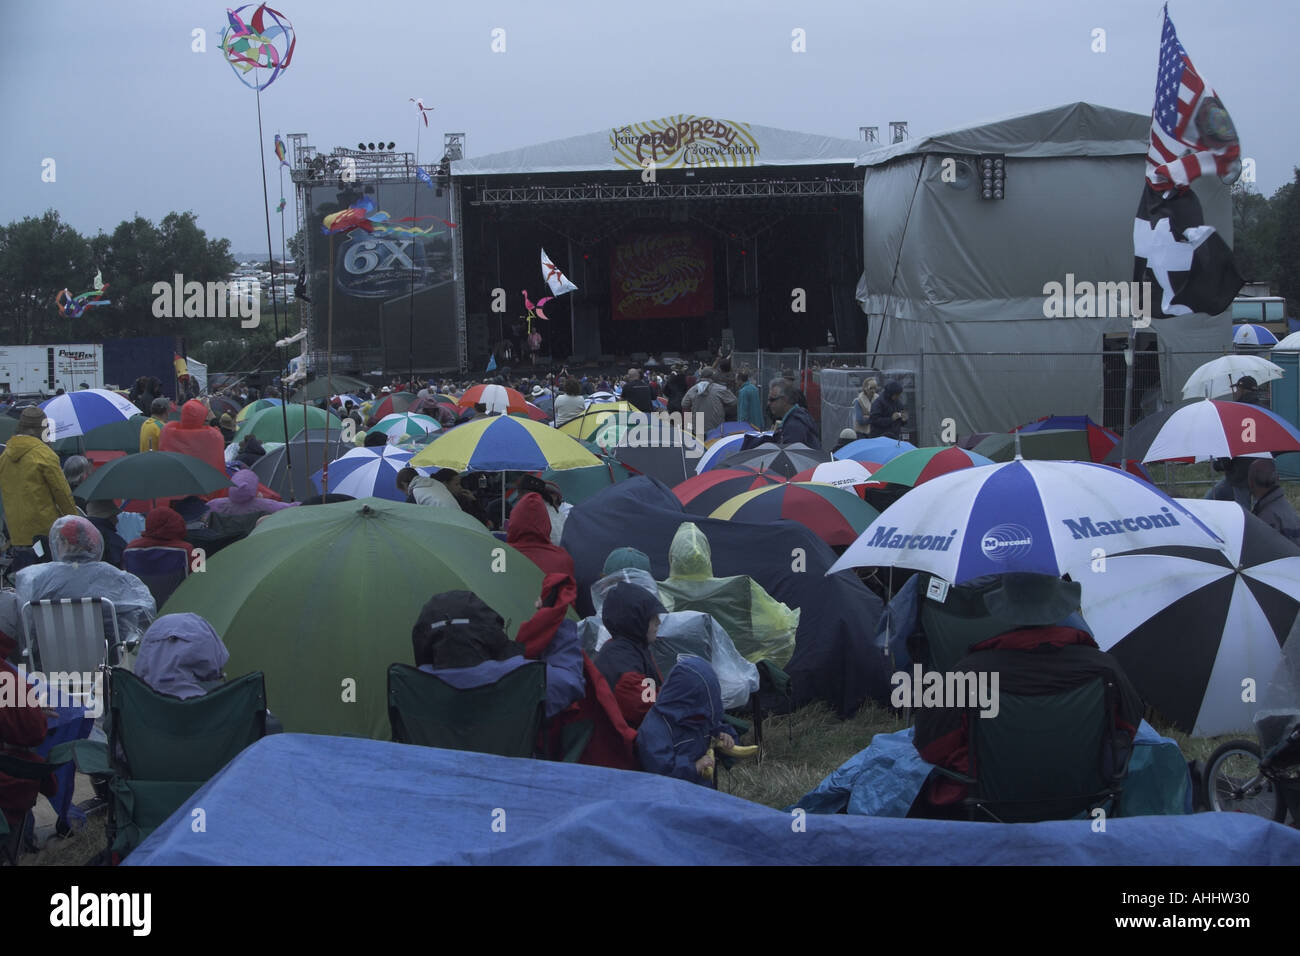 Audience at Cropredy Folk Festival during the rain - Stock Image